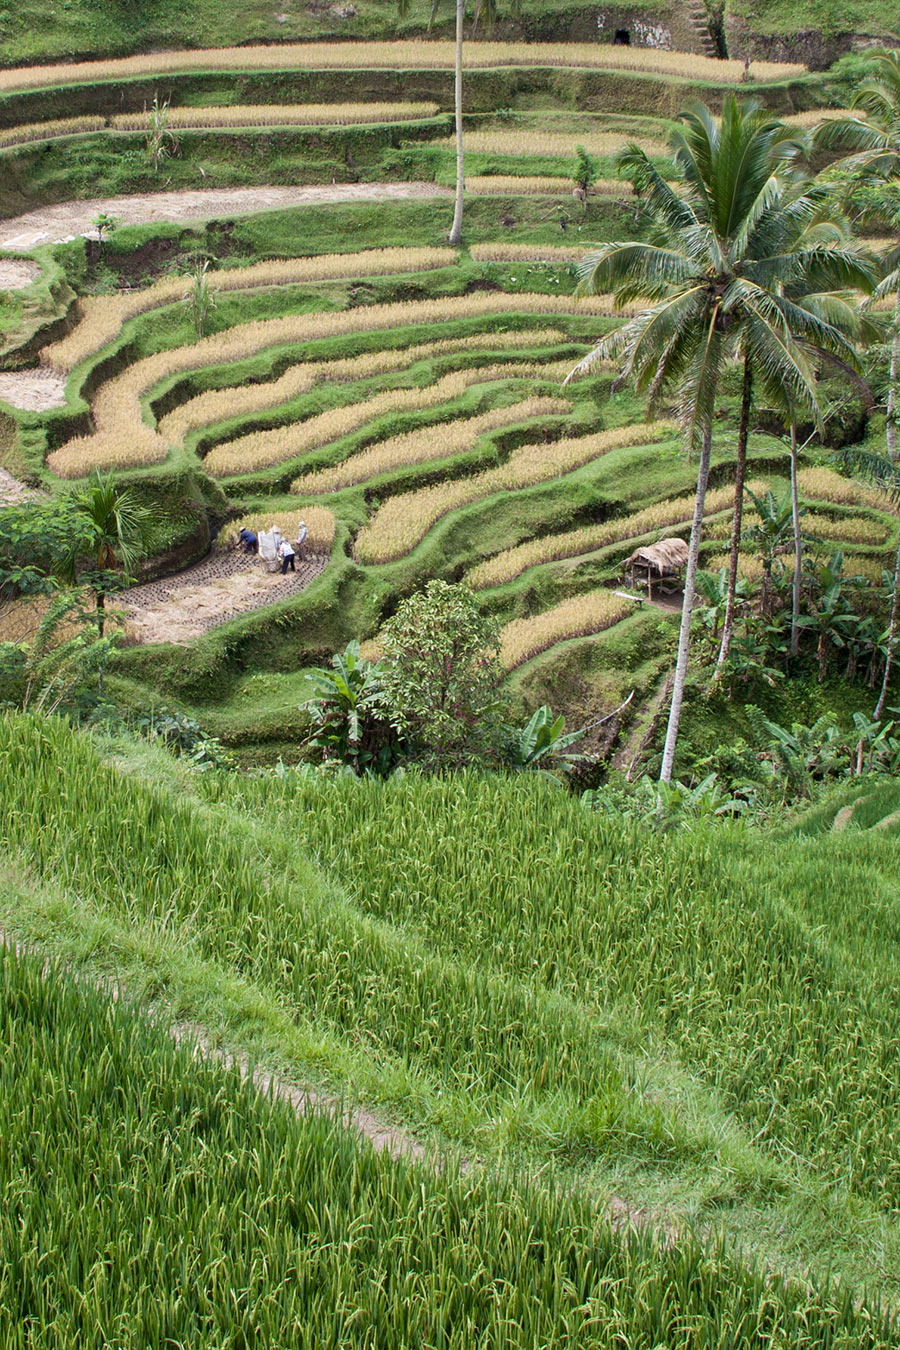 Terraced rice paddies in Bali.